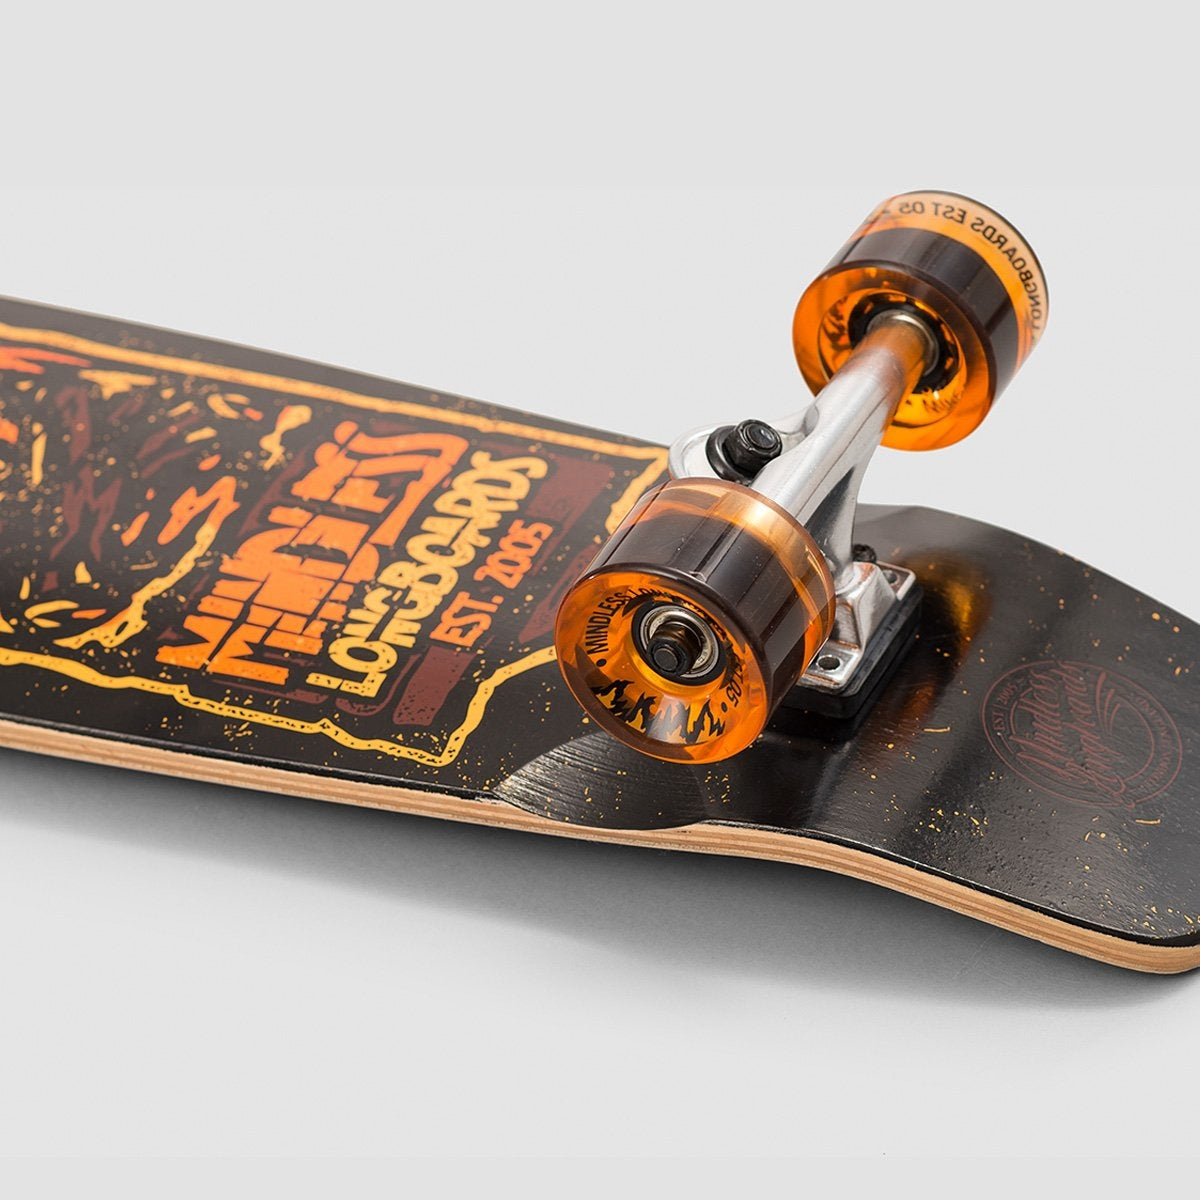 Mindless Campus 4 Cruiser Orange - 28 - Skateboard